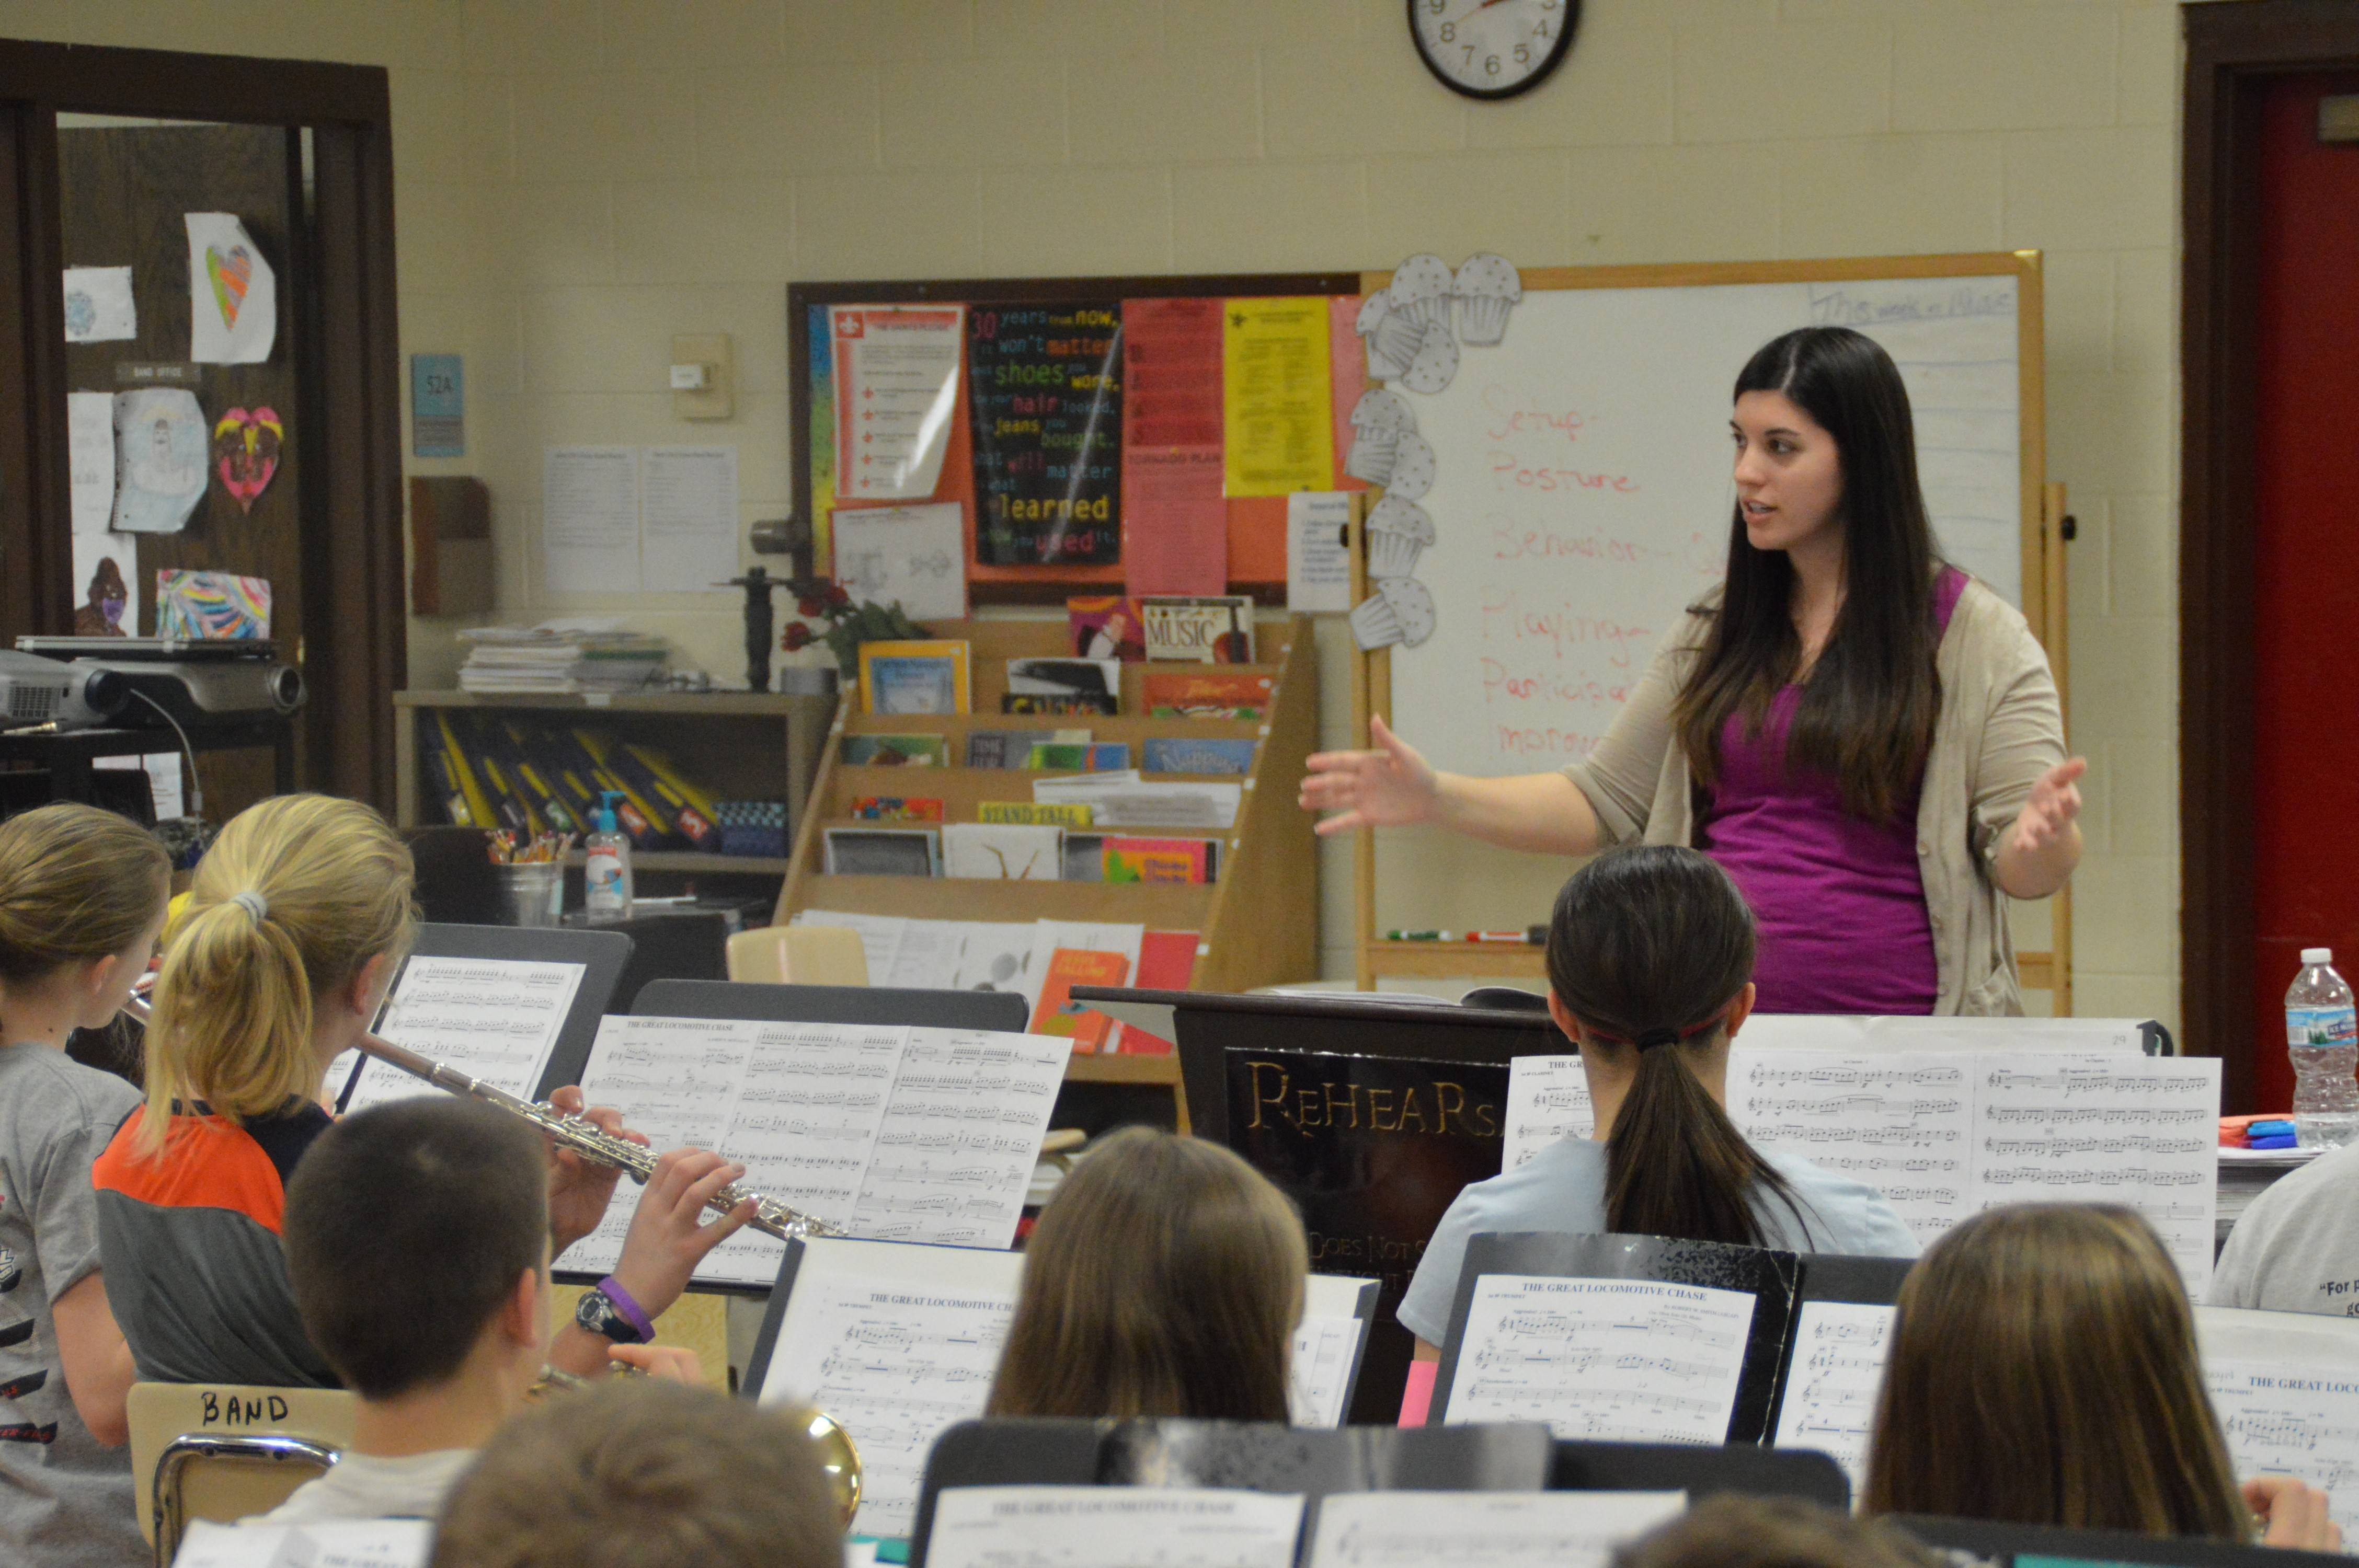 Rachel Hartmann serves as music teacher and fine arts director at St. Peter Lutheran School in Arlington Heights. She is the recipient of the Lutheran Education Association's 2014 Outstanding New Lutheran Elementary Teacher Award.